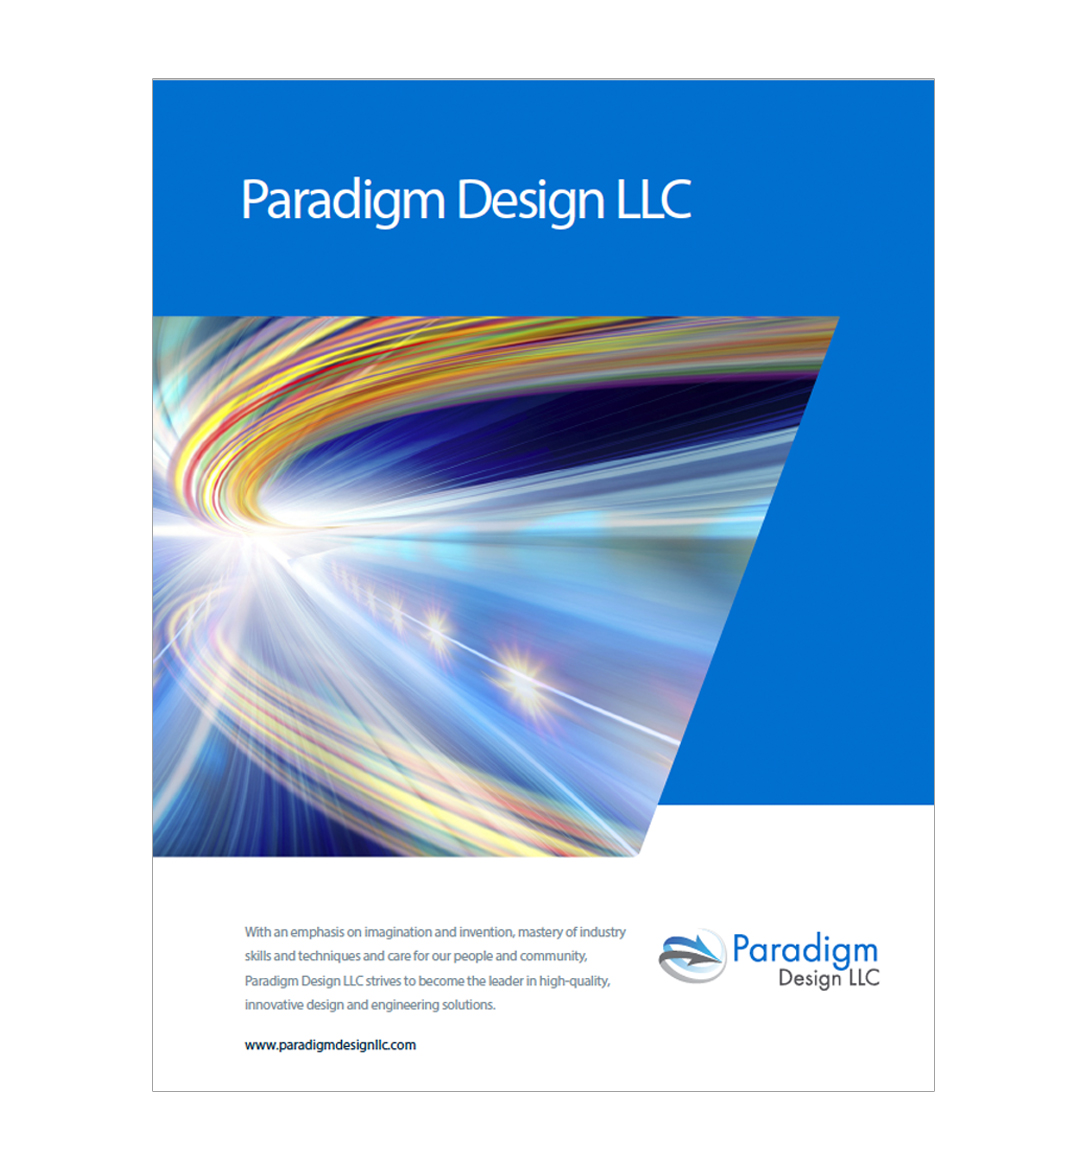 Paradigm Design LLC